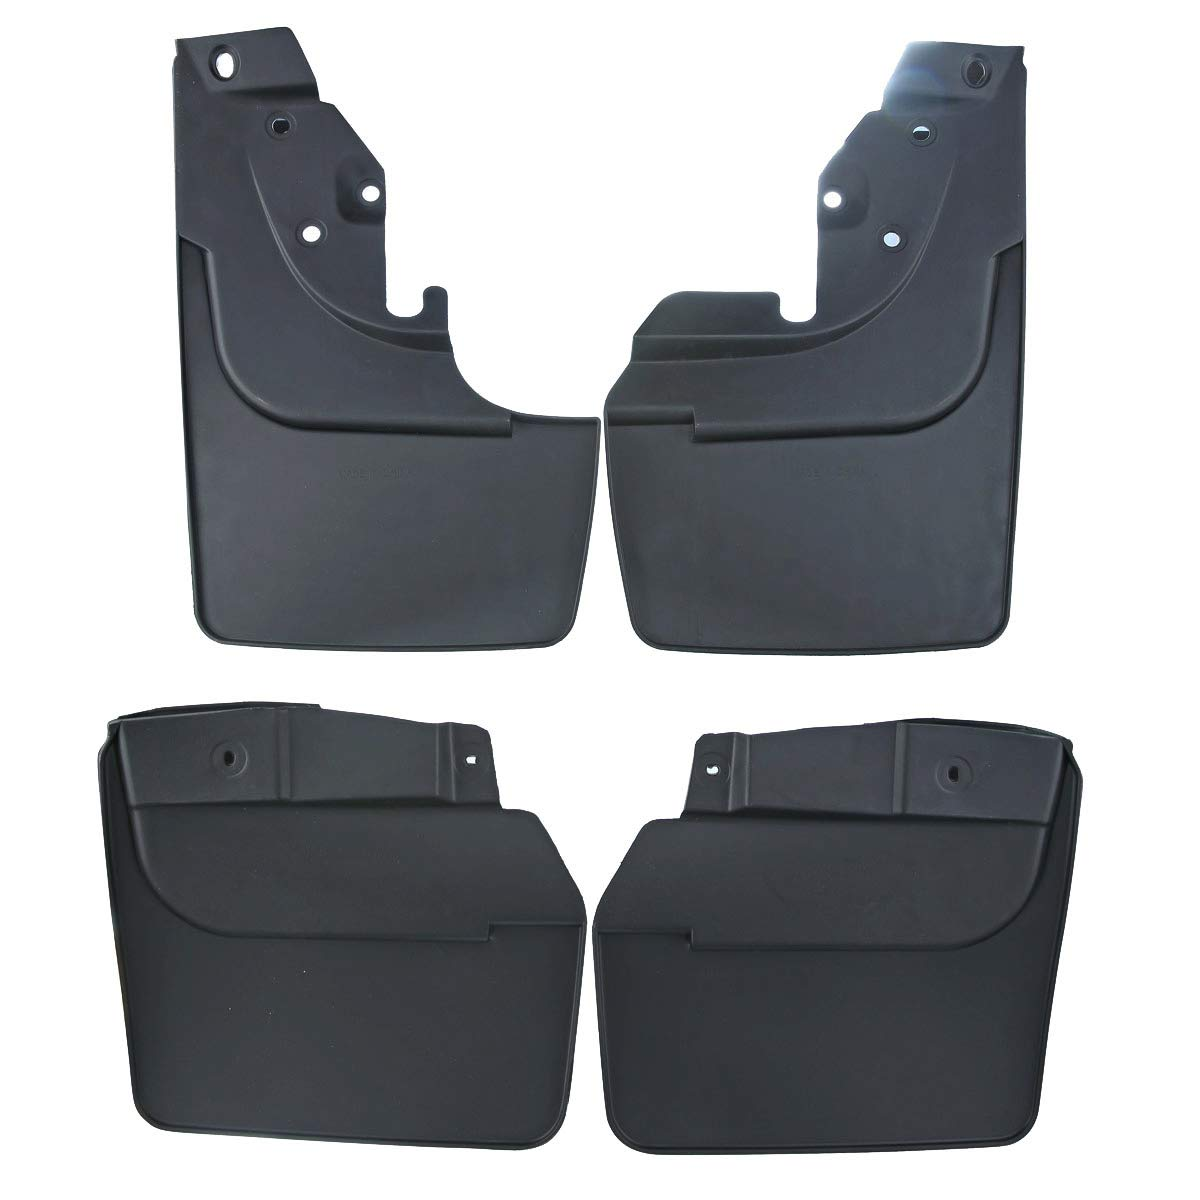 A-Premium Splash Guards Mud Flaps Mudflaps for Toyota Land/Cruiser 80 Series 1990-1997 with/Factory/Fender/Flares 4-PC Set